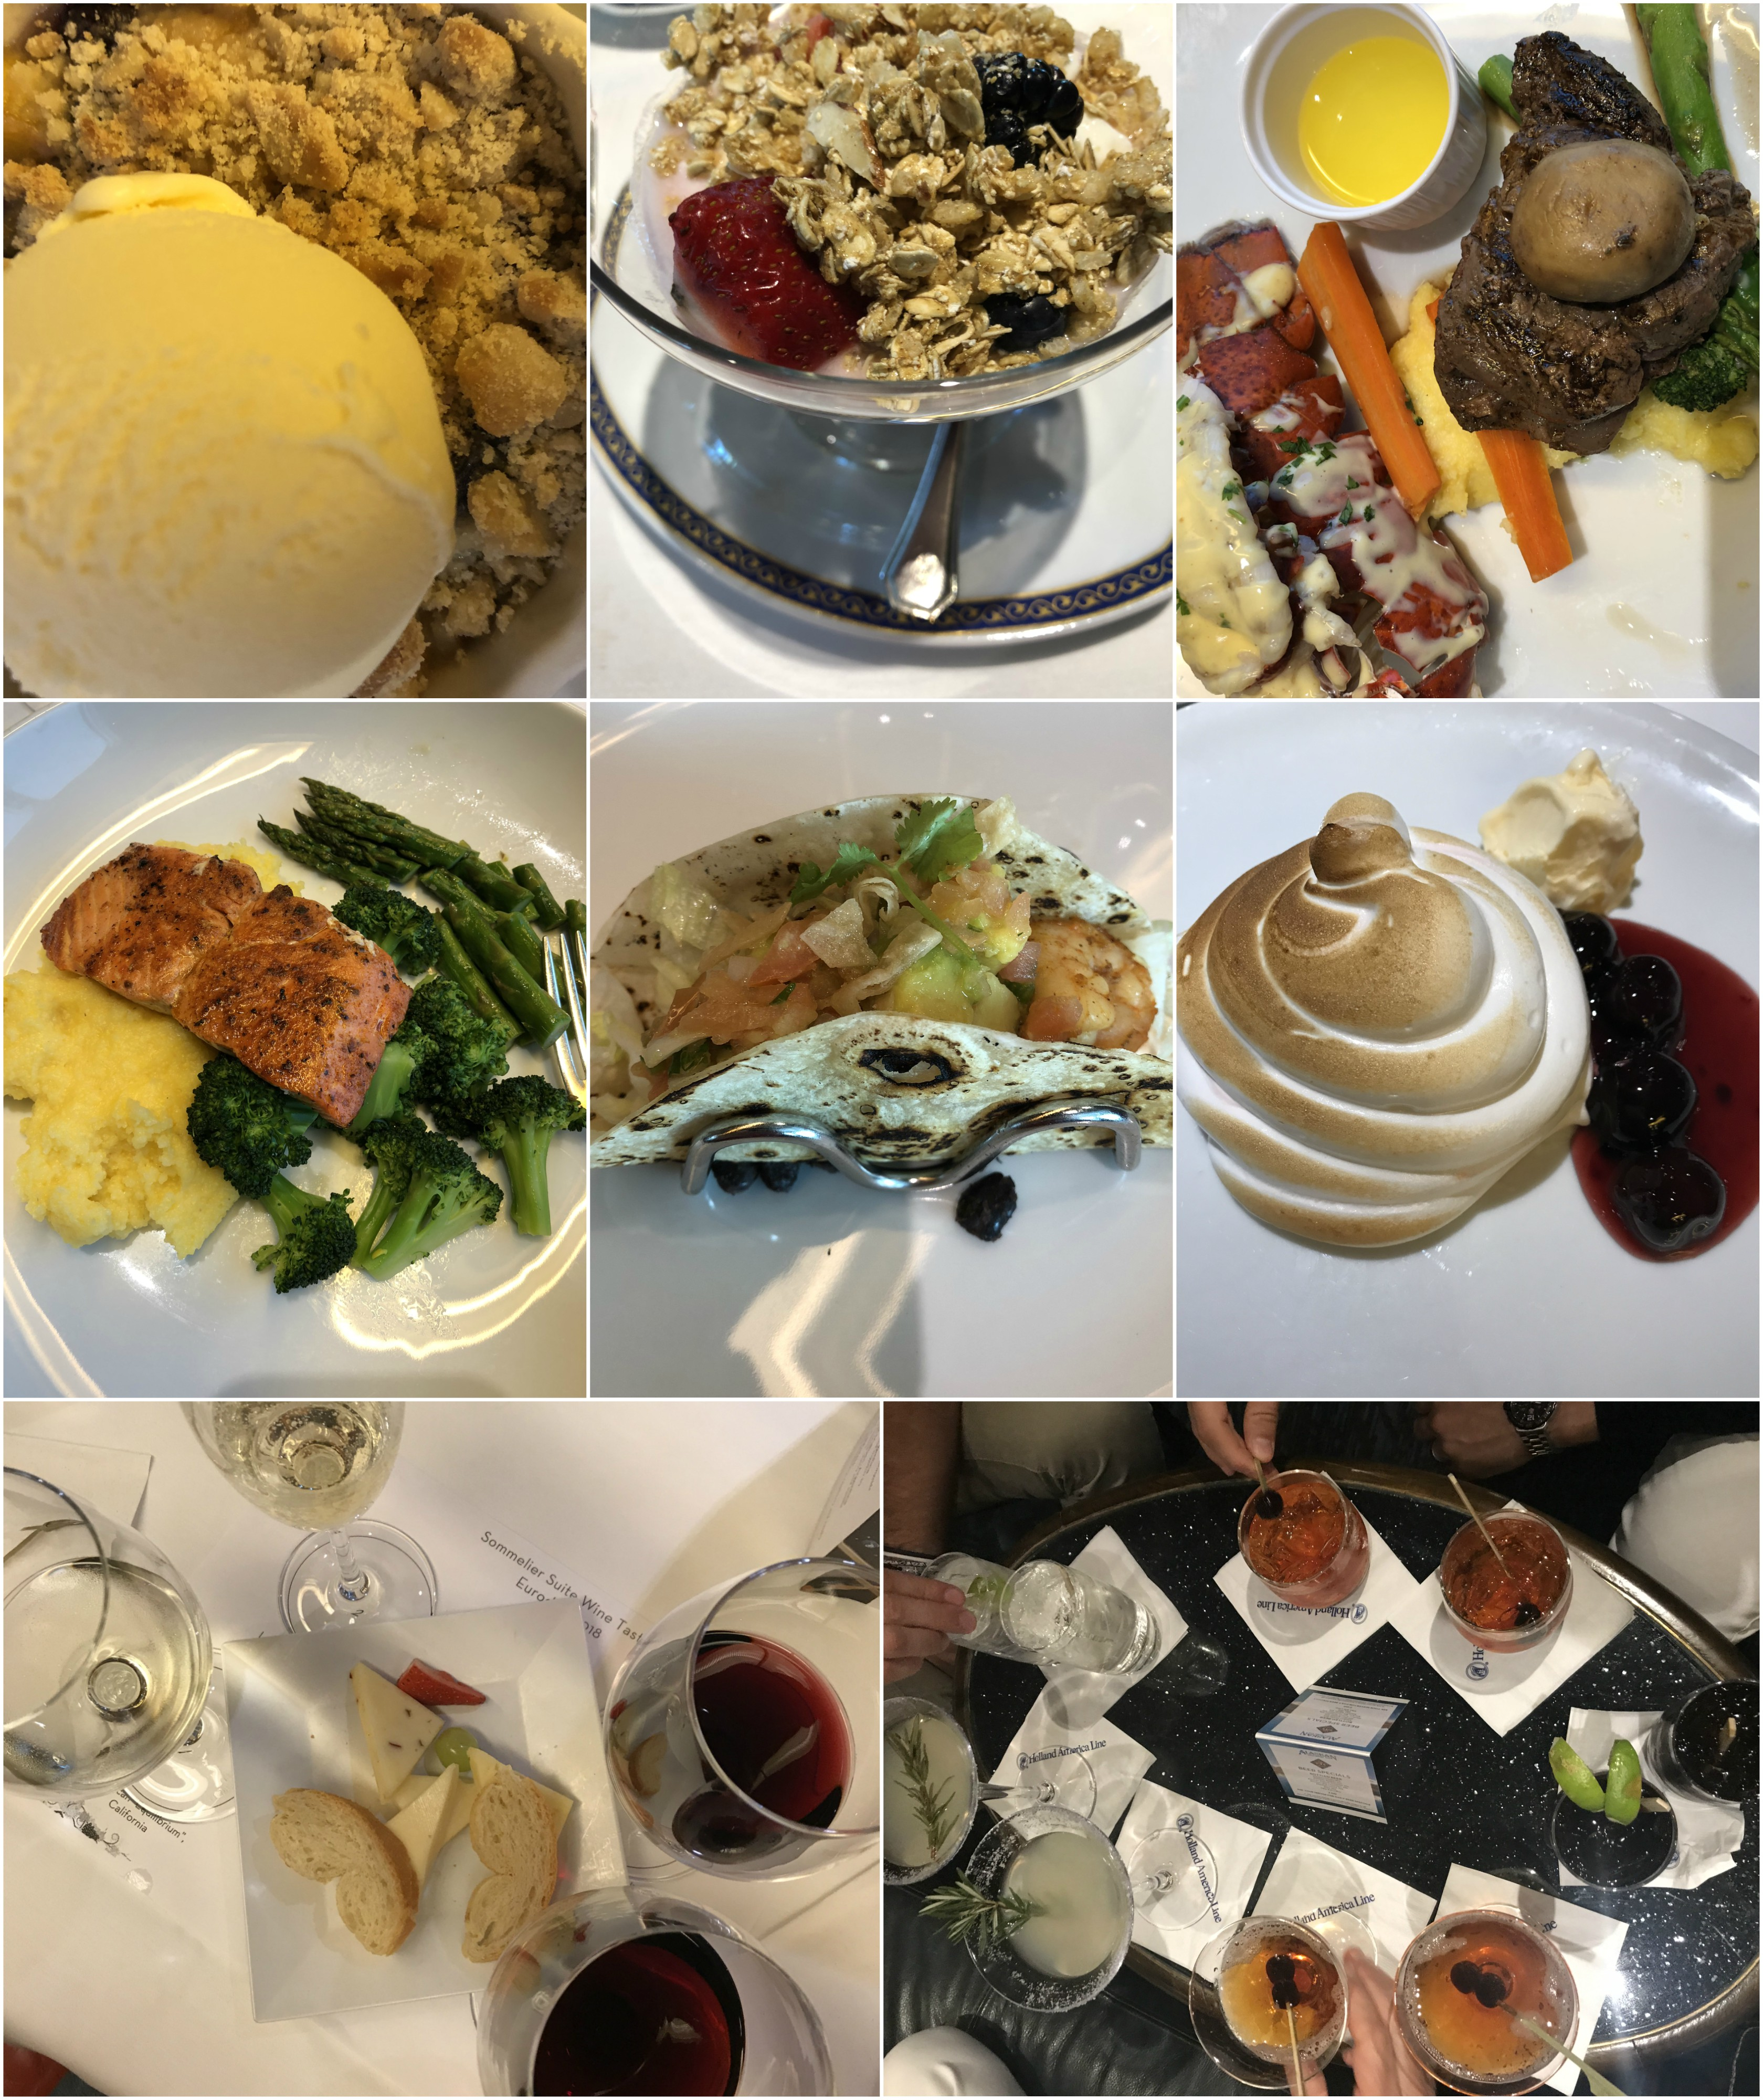 HollandAmericaFood - What I Really Thought About Our 7-Day Holland America Cruise To Alaska - Cruise To Alaska - Holland American Cruise Line - Alaska Itinerary - Communikait by Kait Hanson